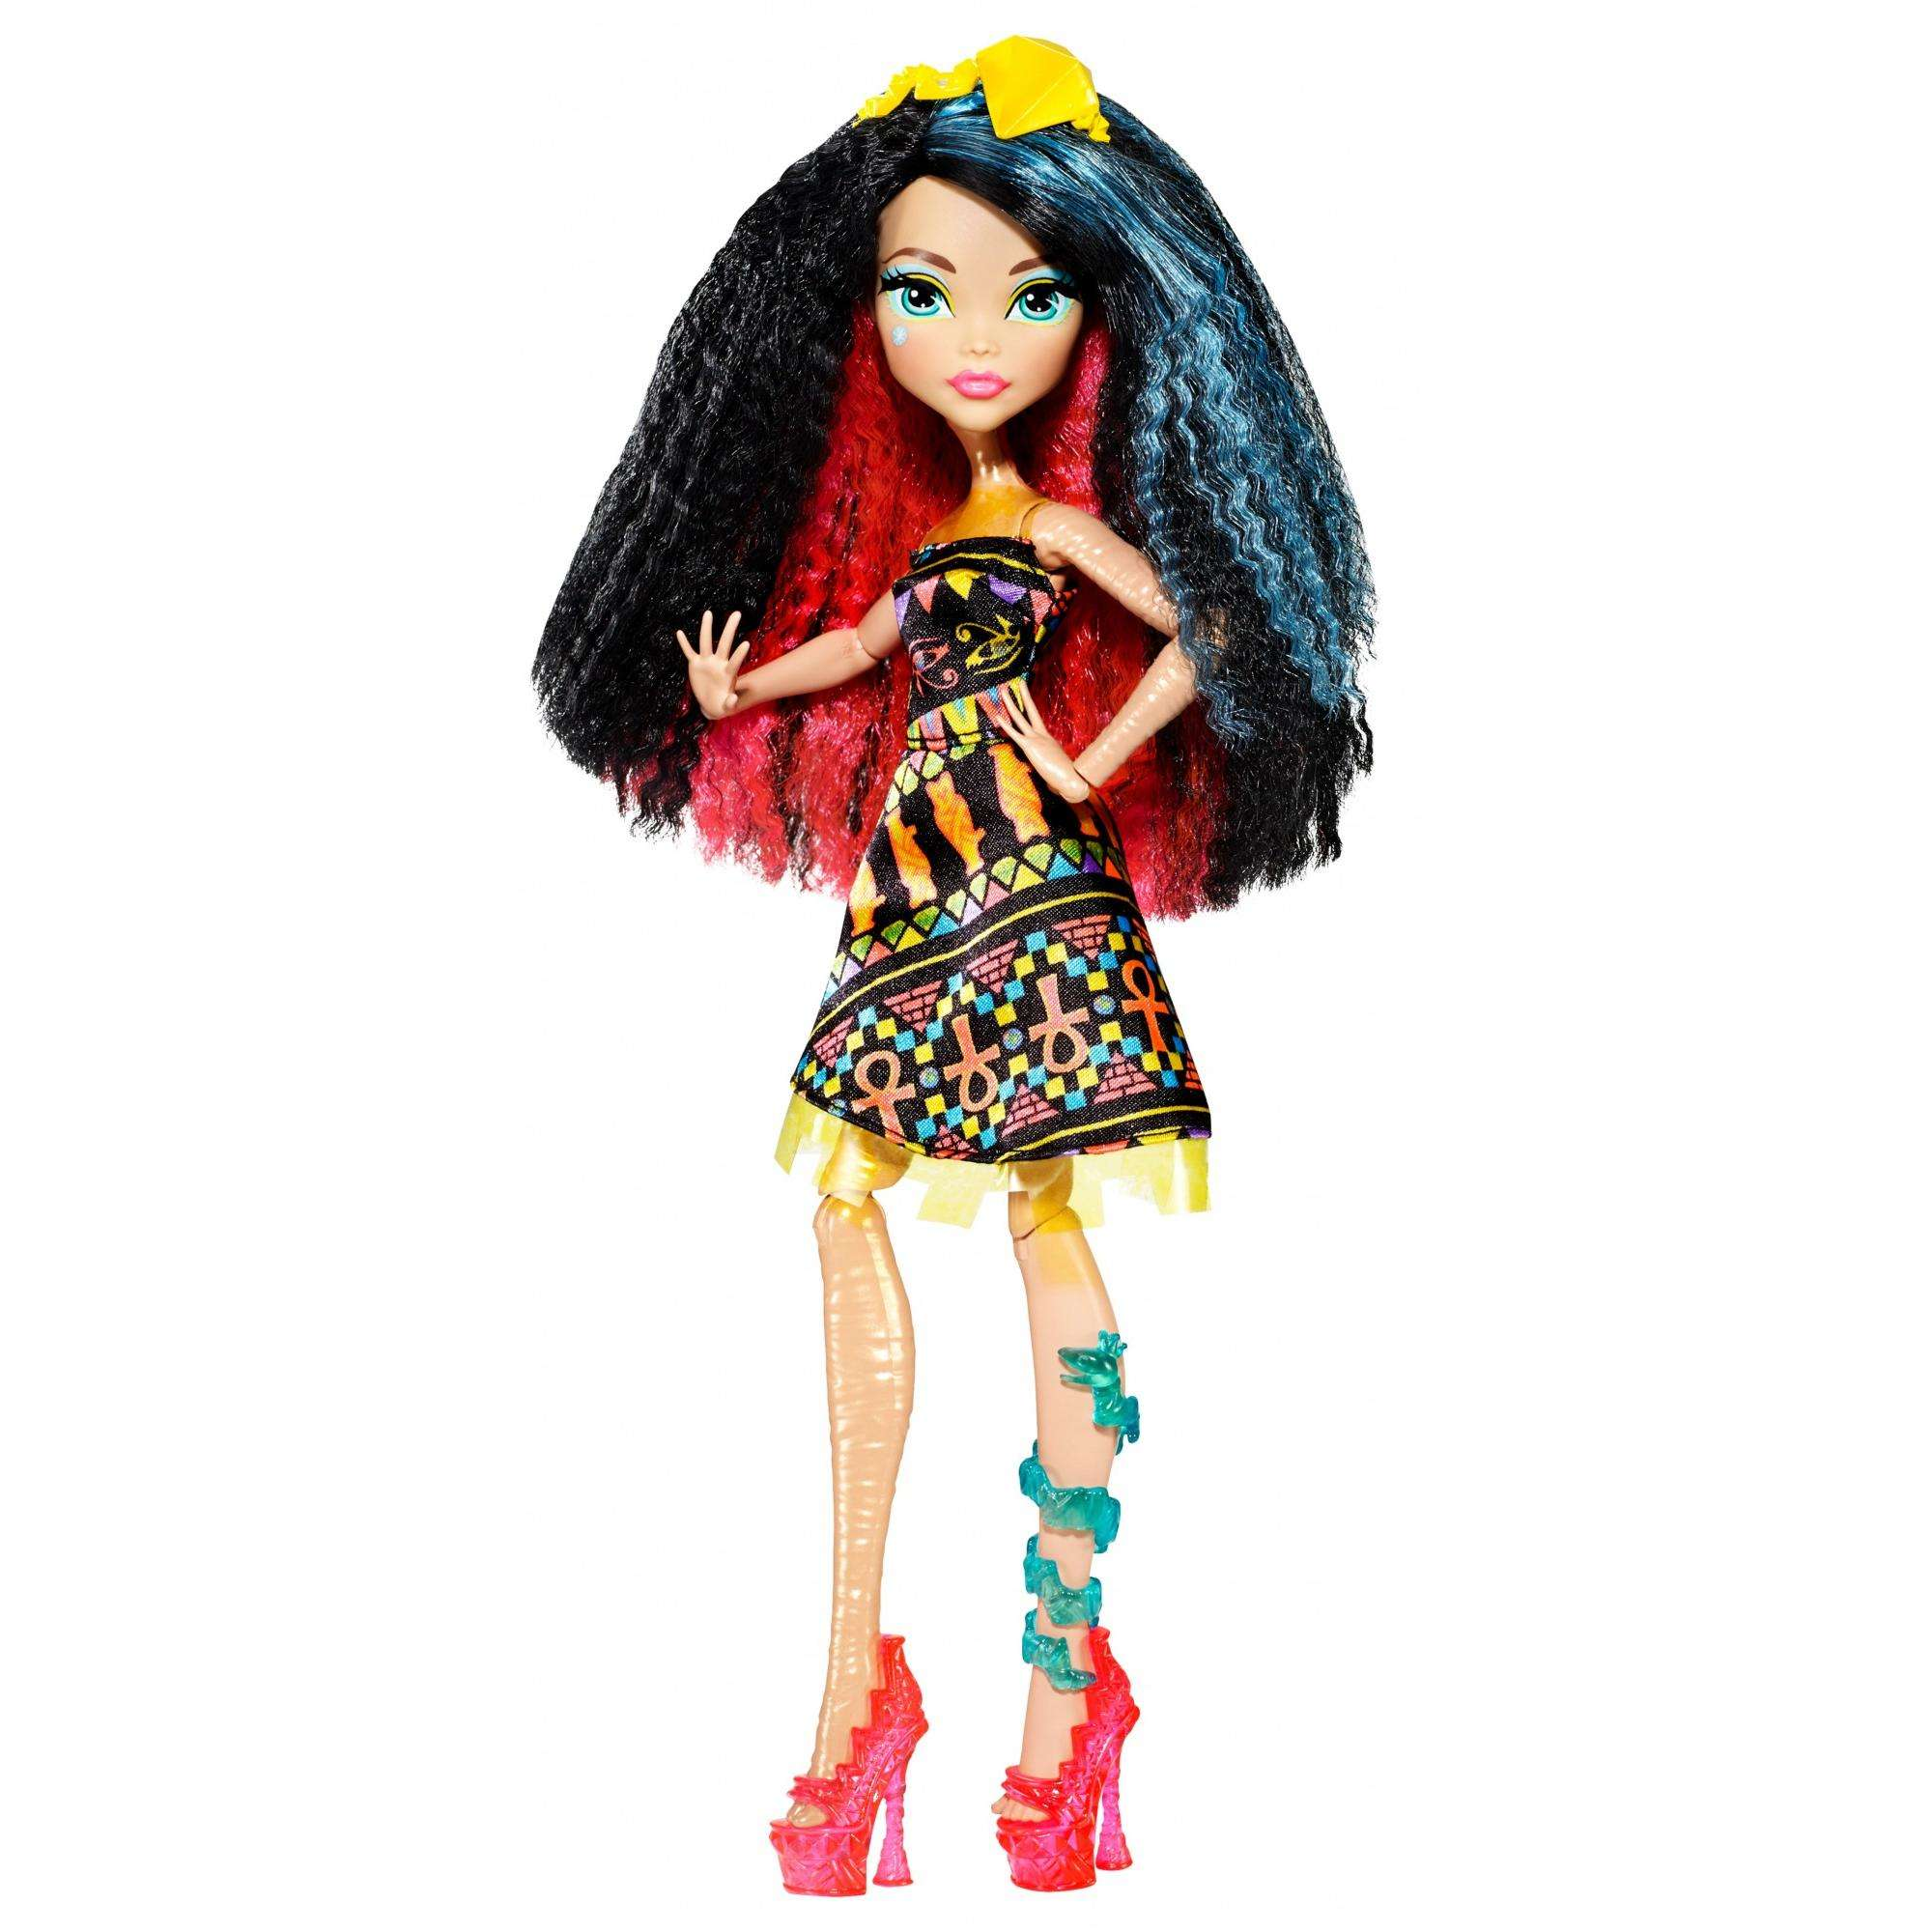 Monster High Electrified Hair Raising Ghouls Cleo de Nile Doll by MATTEL INC.